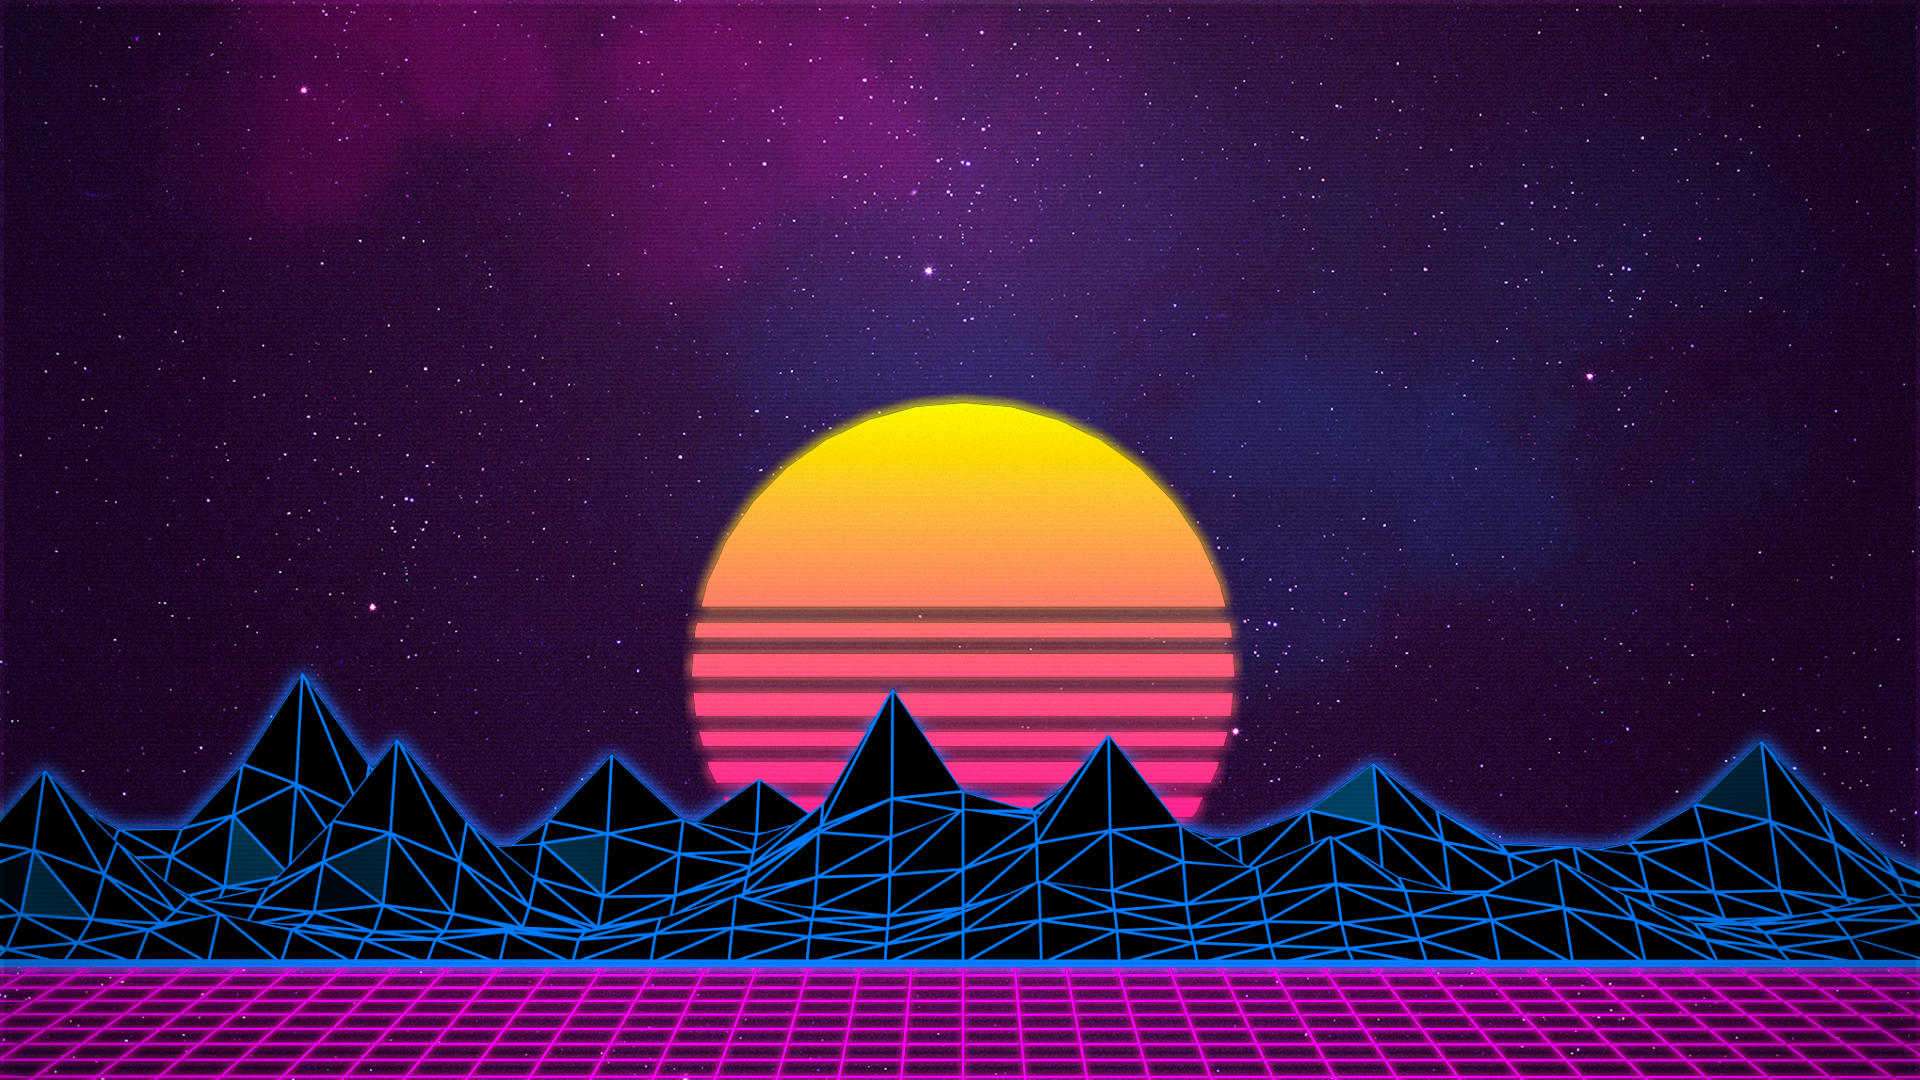 Retrowave  Top reddit wallpapers  Pinterest  Retro waves, Wallpaper and Dope wallpapers